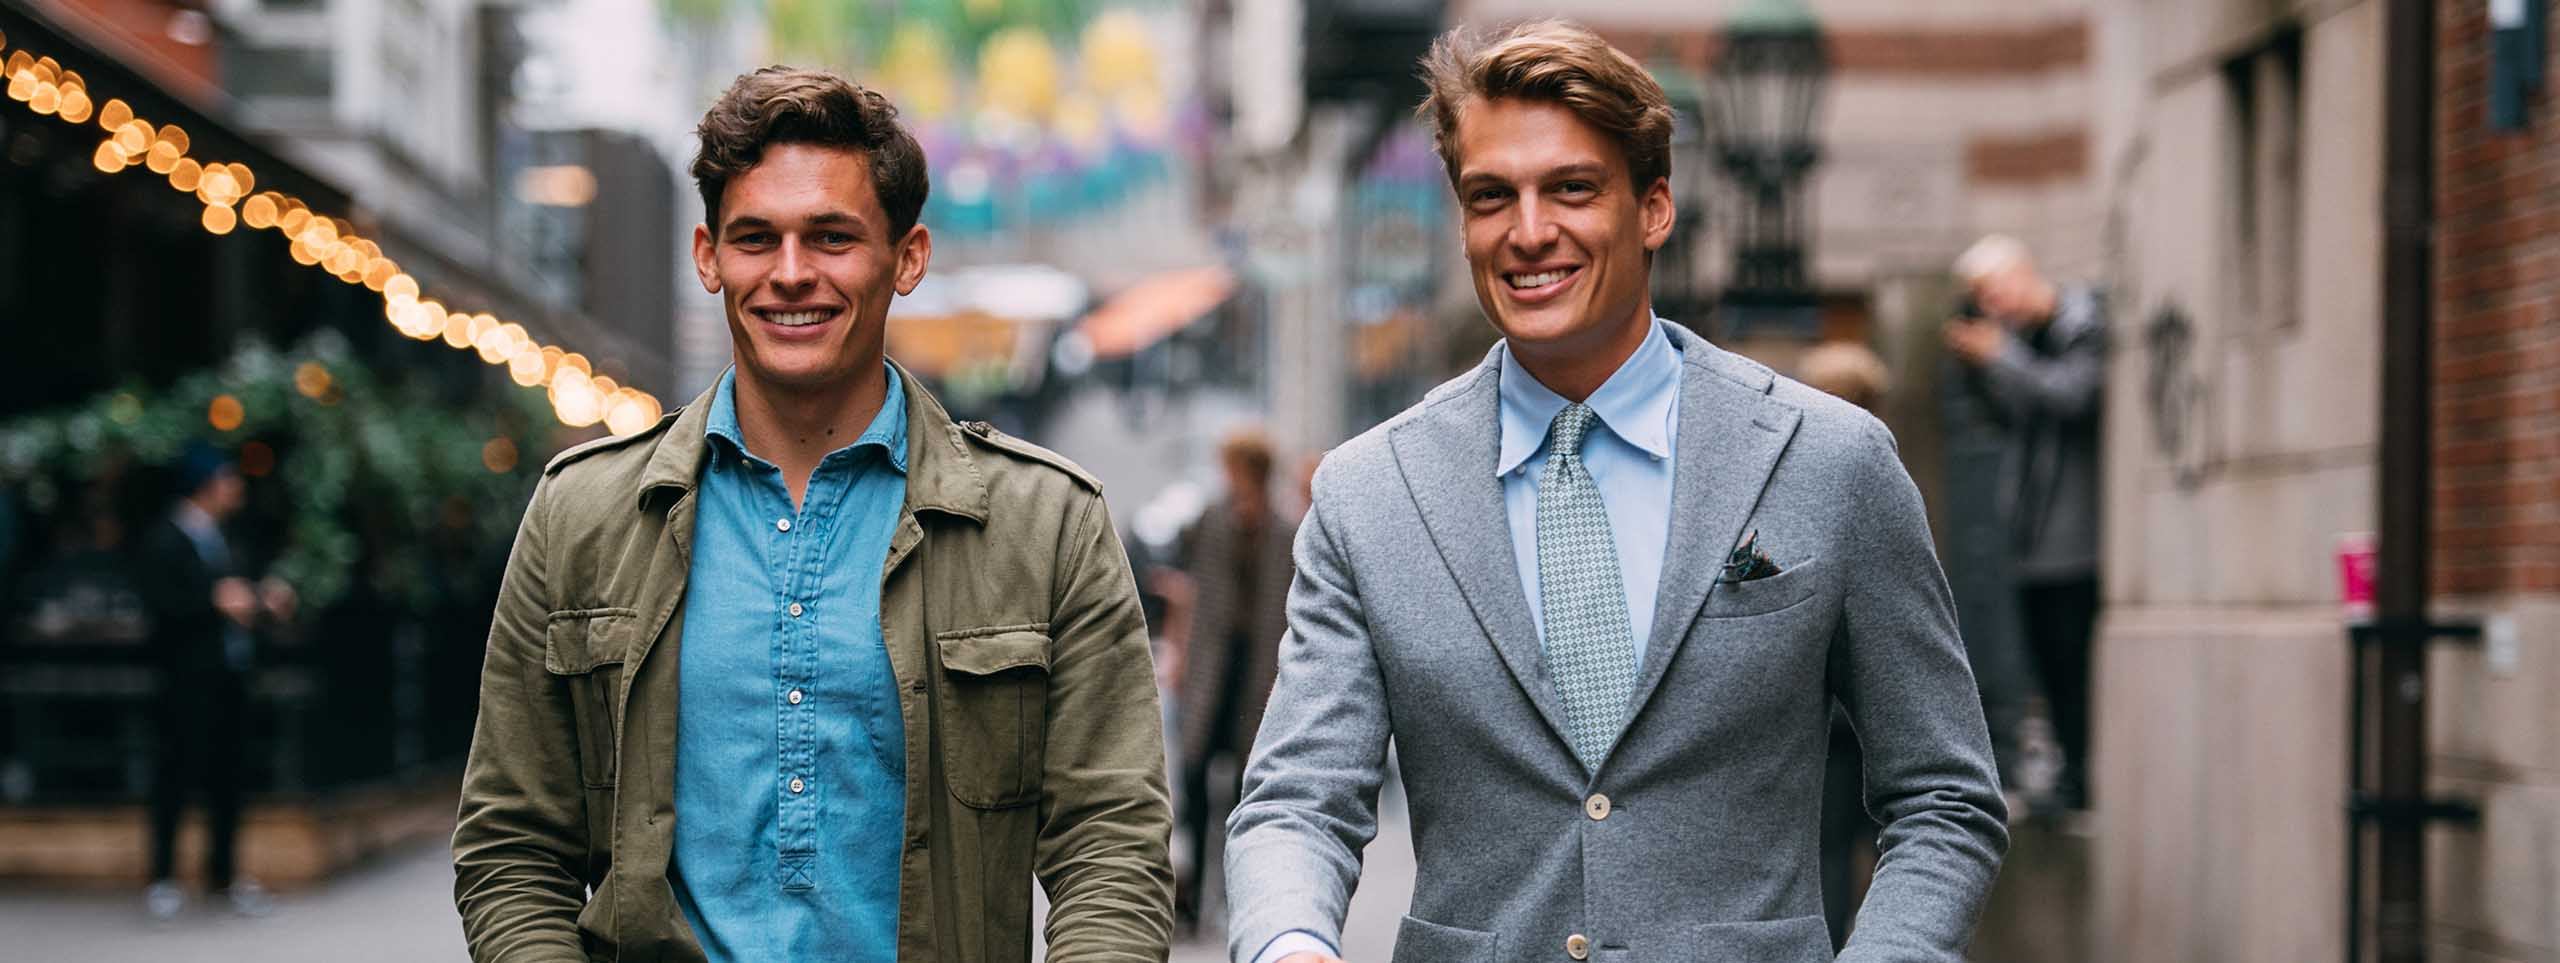 Two men in business wear with business hairstyles